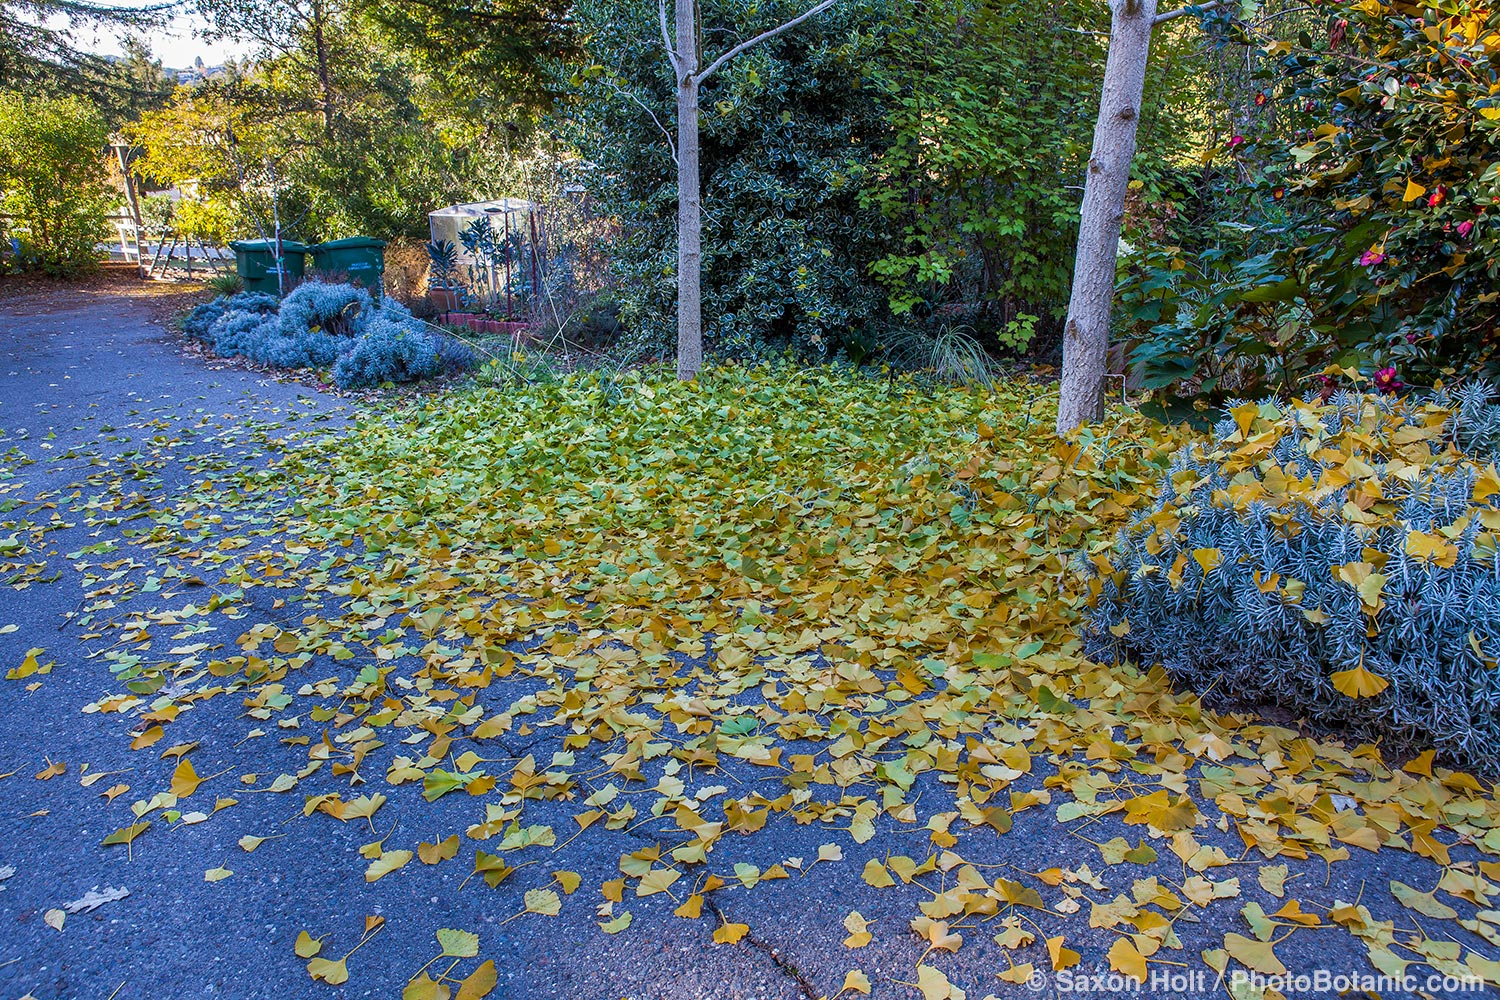 Ginkgo biloba tree leaves in puddle on driveway after autumn frost.